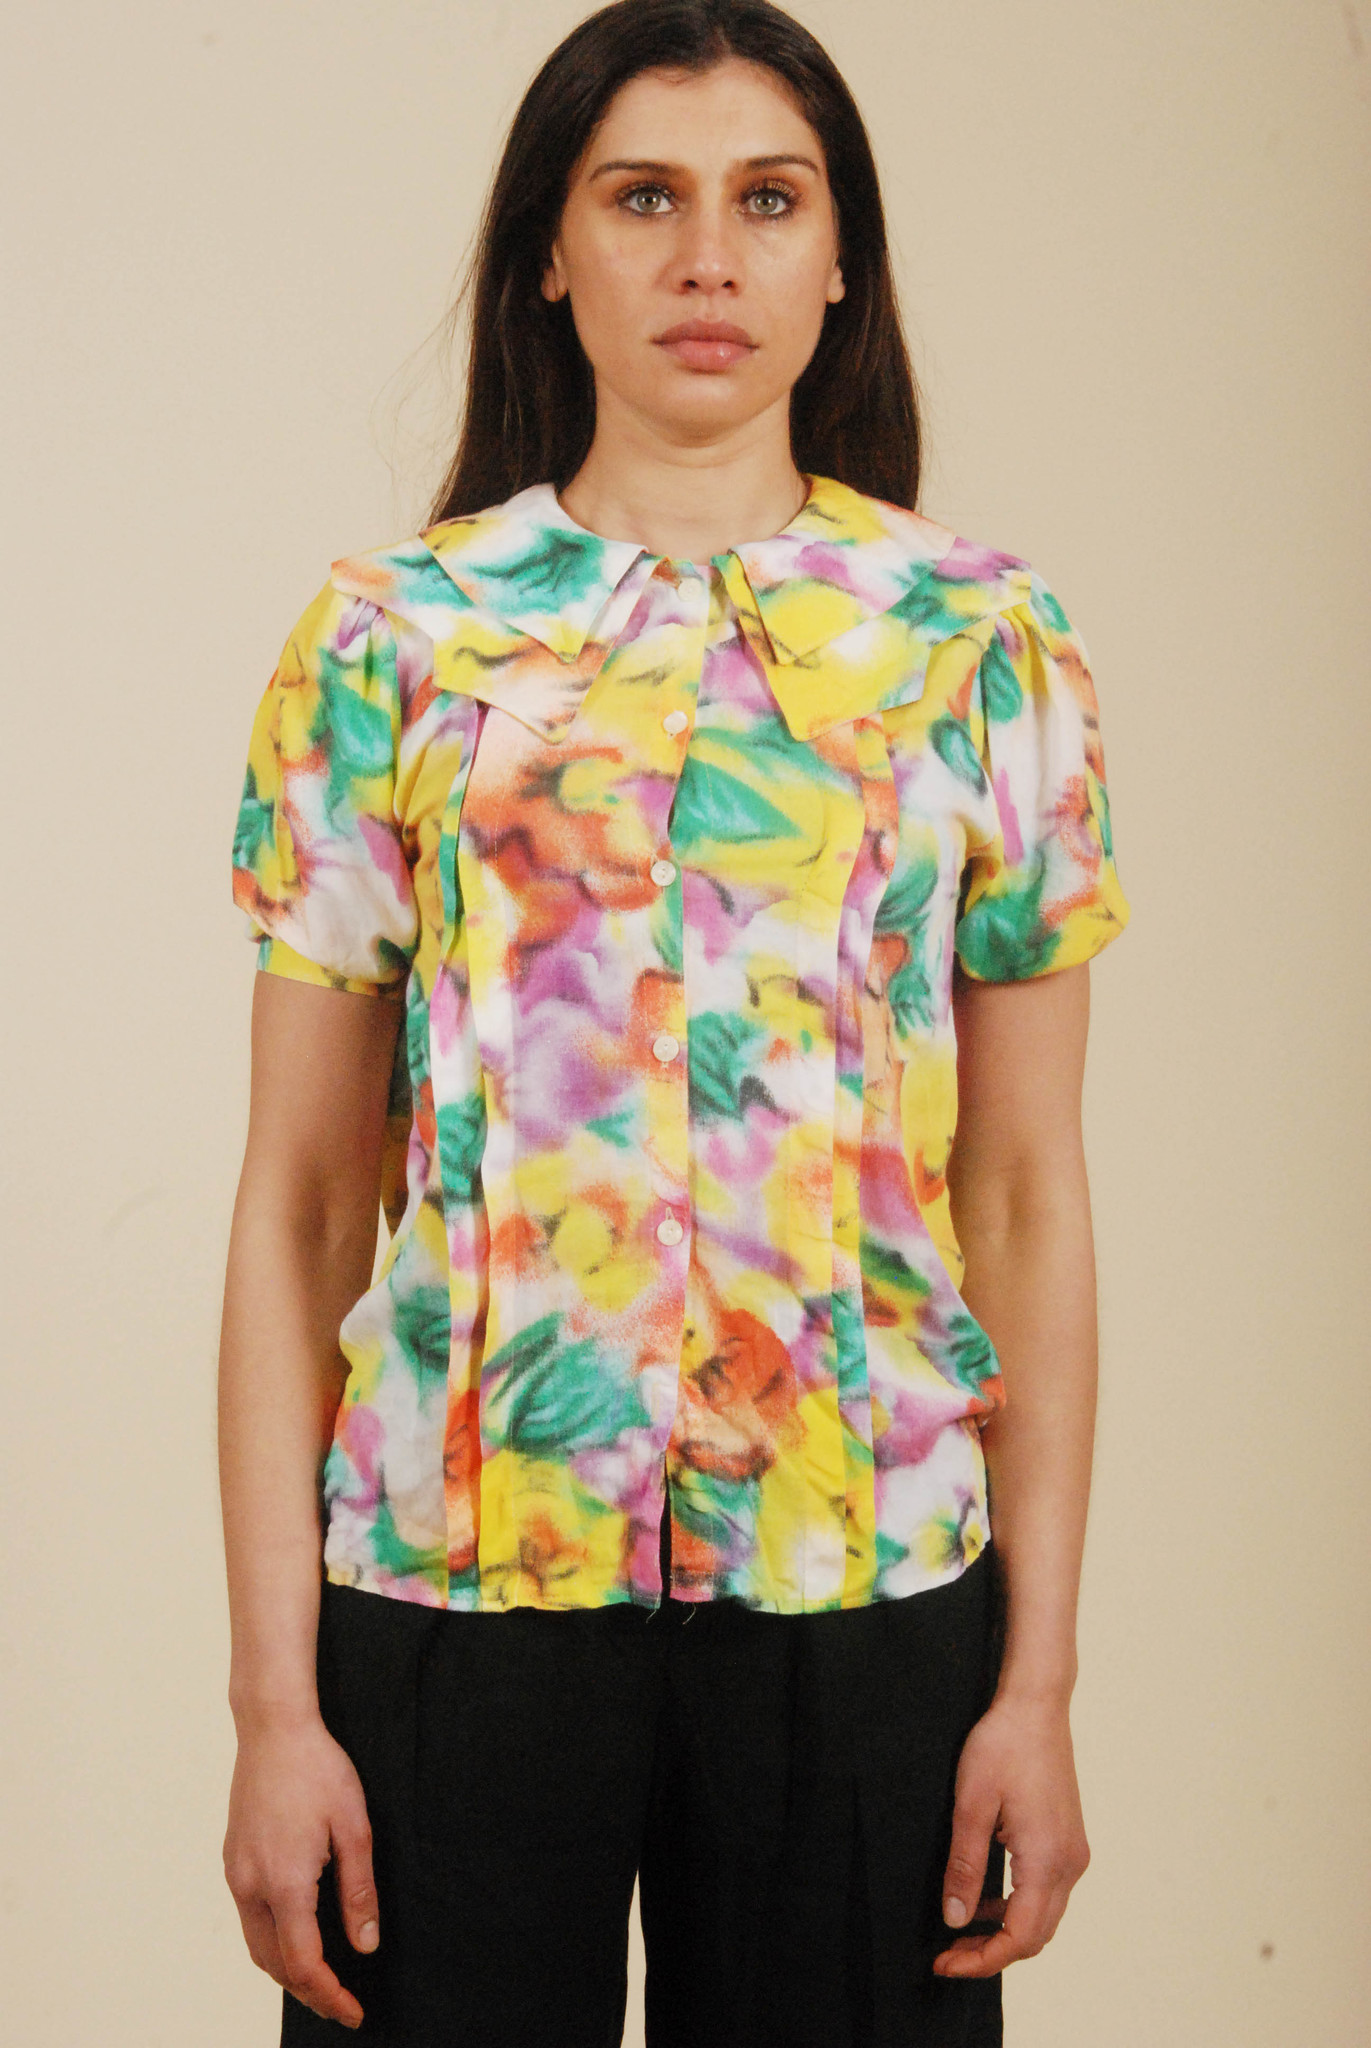 Colorful 80s shirt